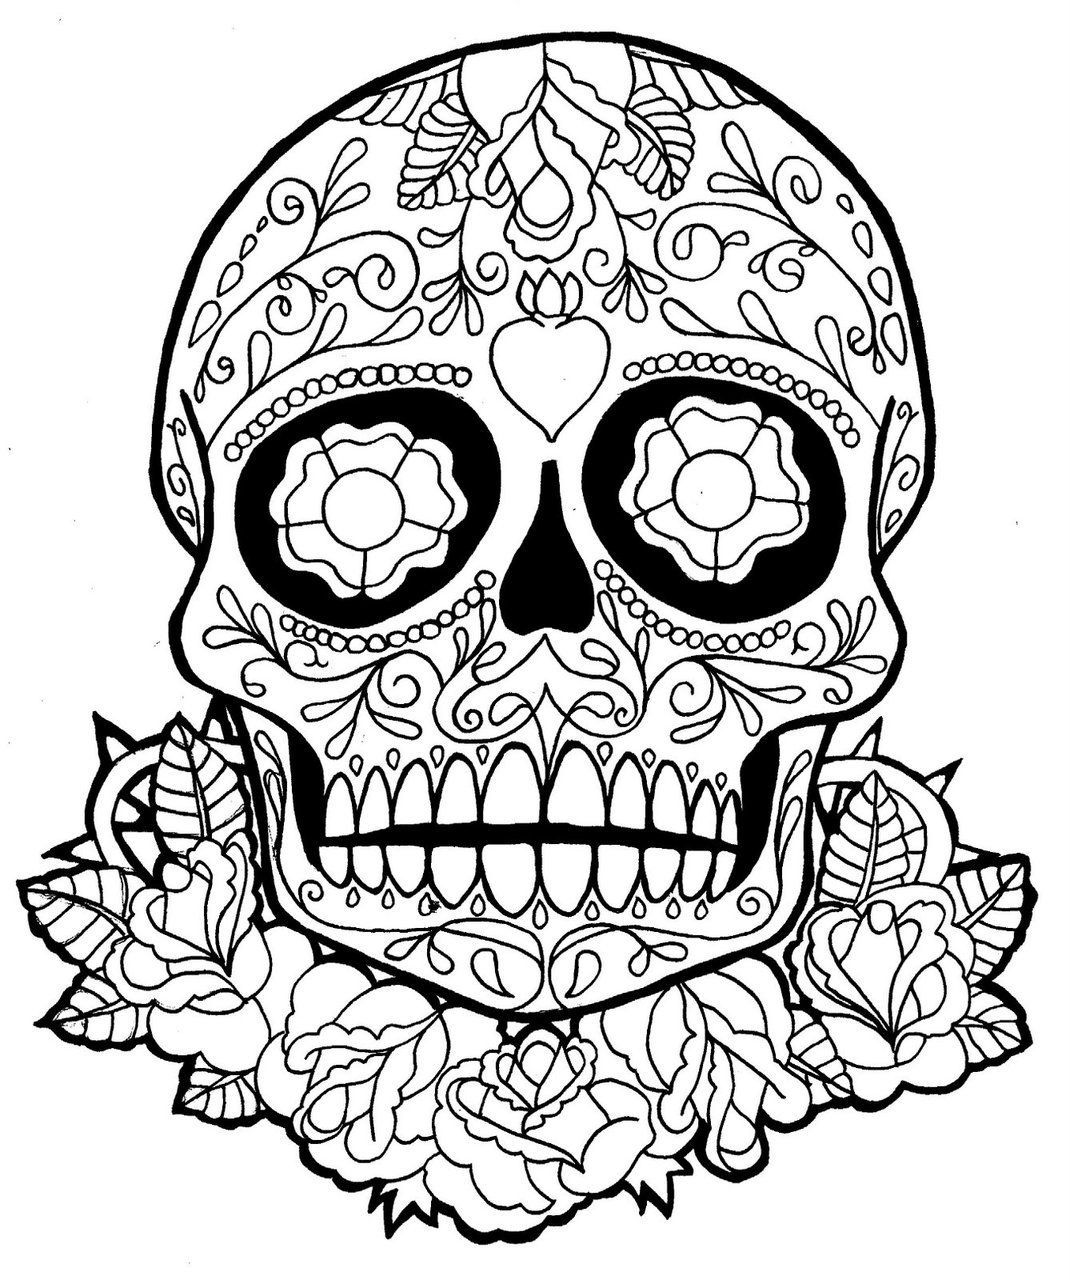 1070x1280 Inspirational Skull Coloring Pages For Teen Free Coloring Pages